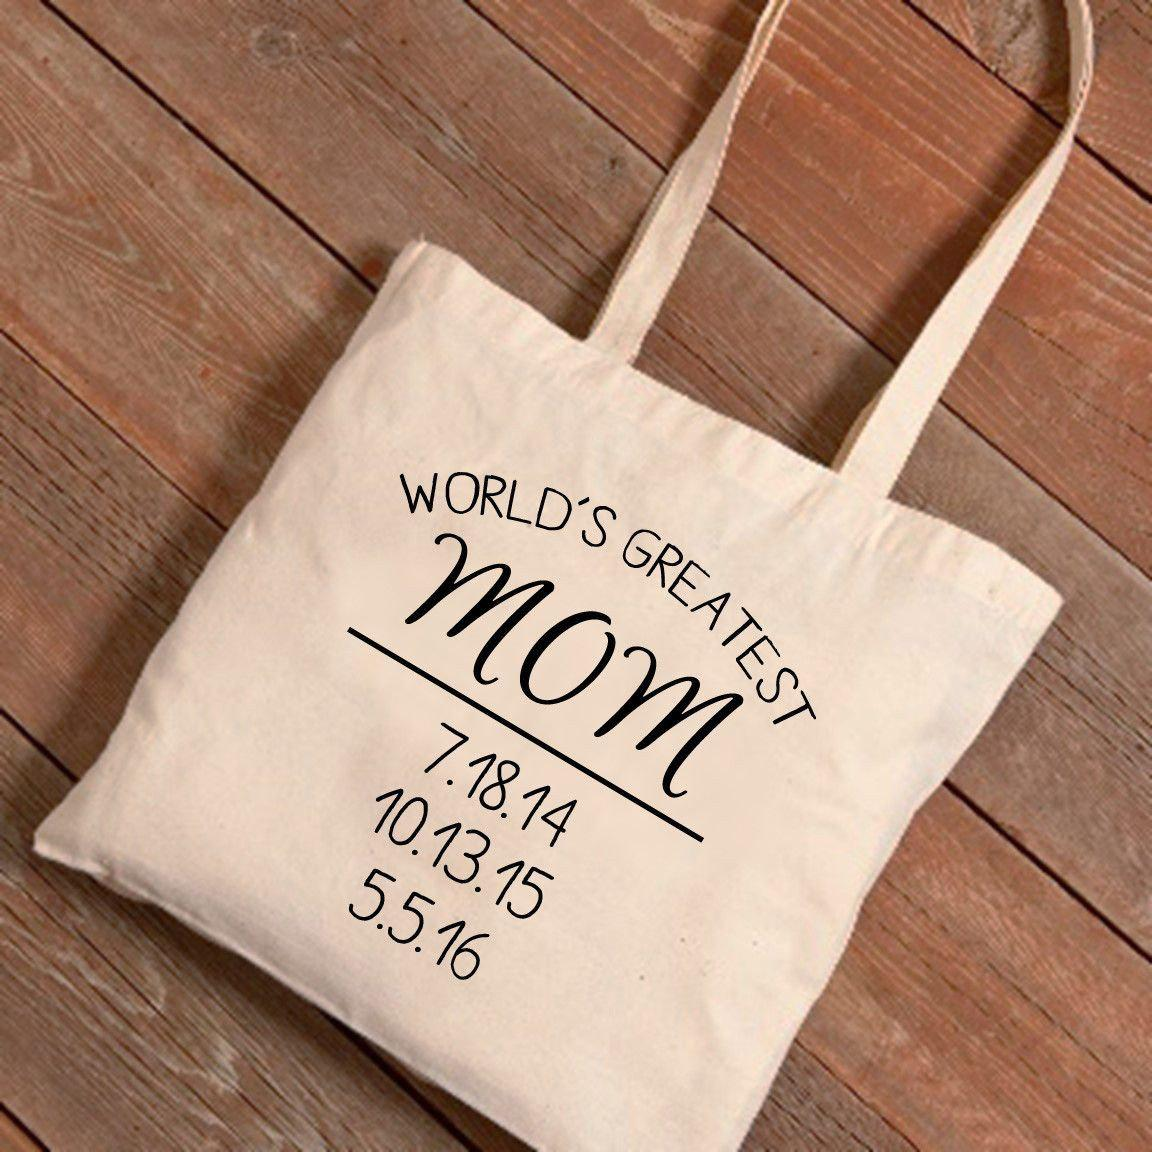 Personalized-Tote-Bags-Worlds-Greatest-Mom-Mothers-Day-Gifts